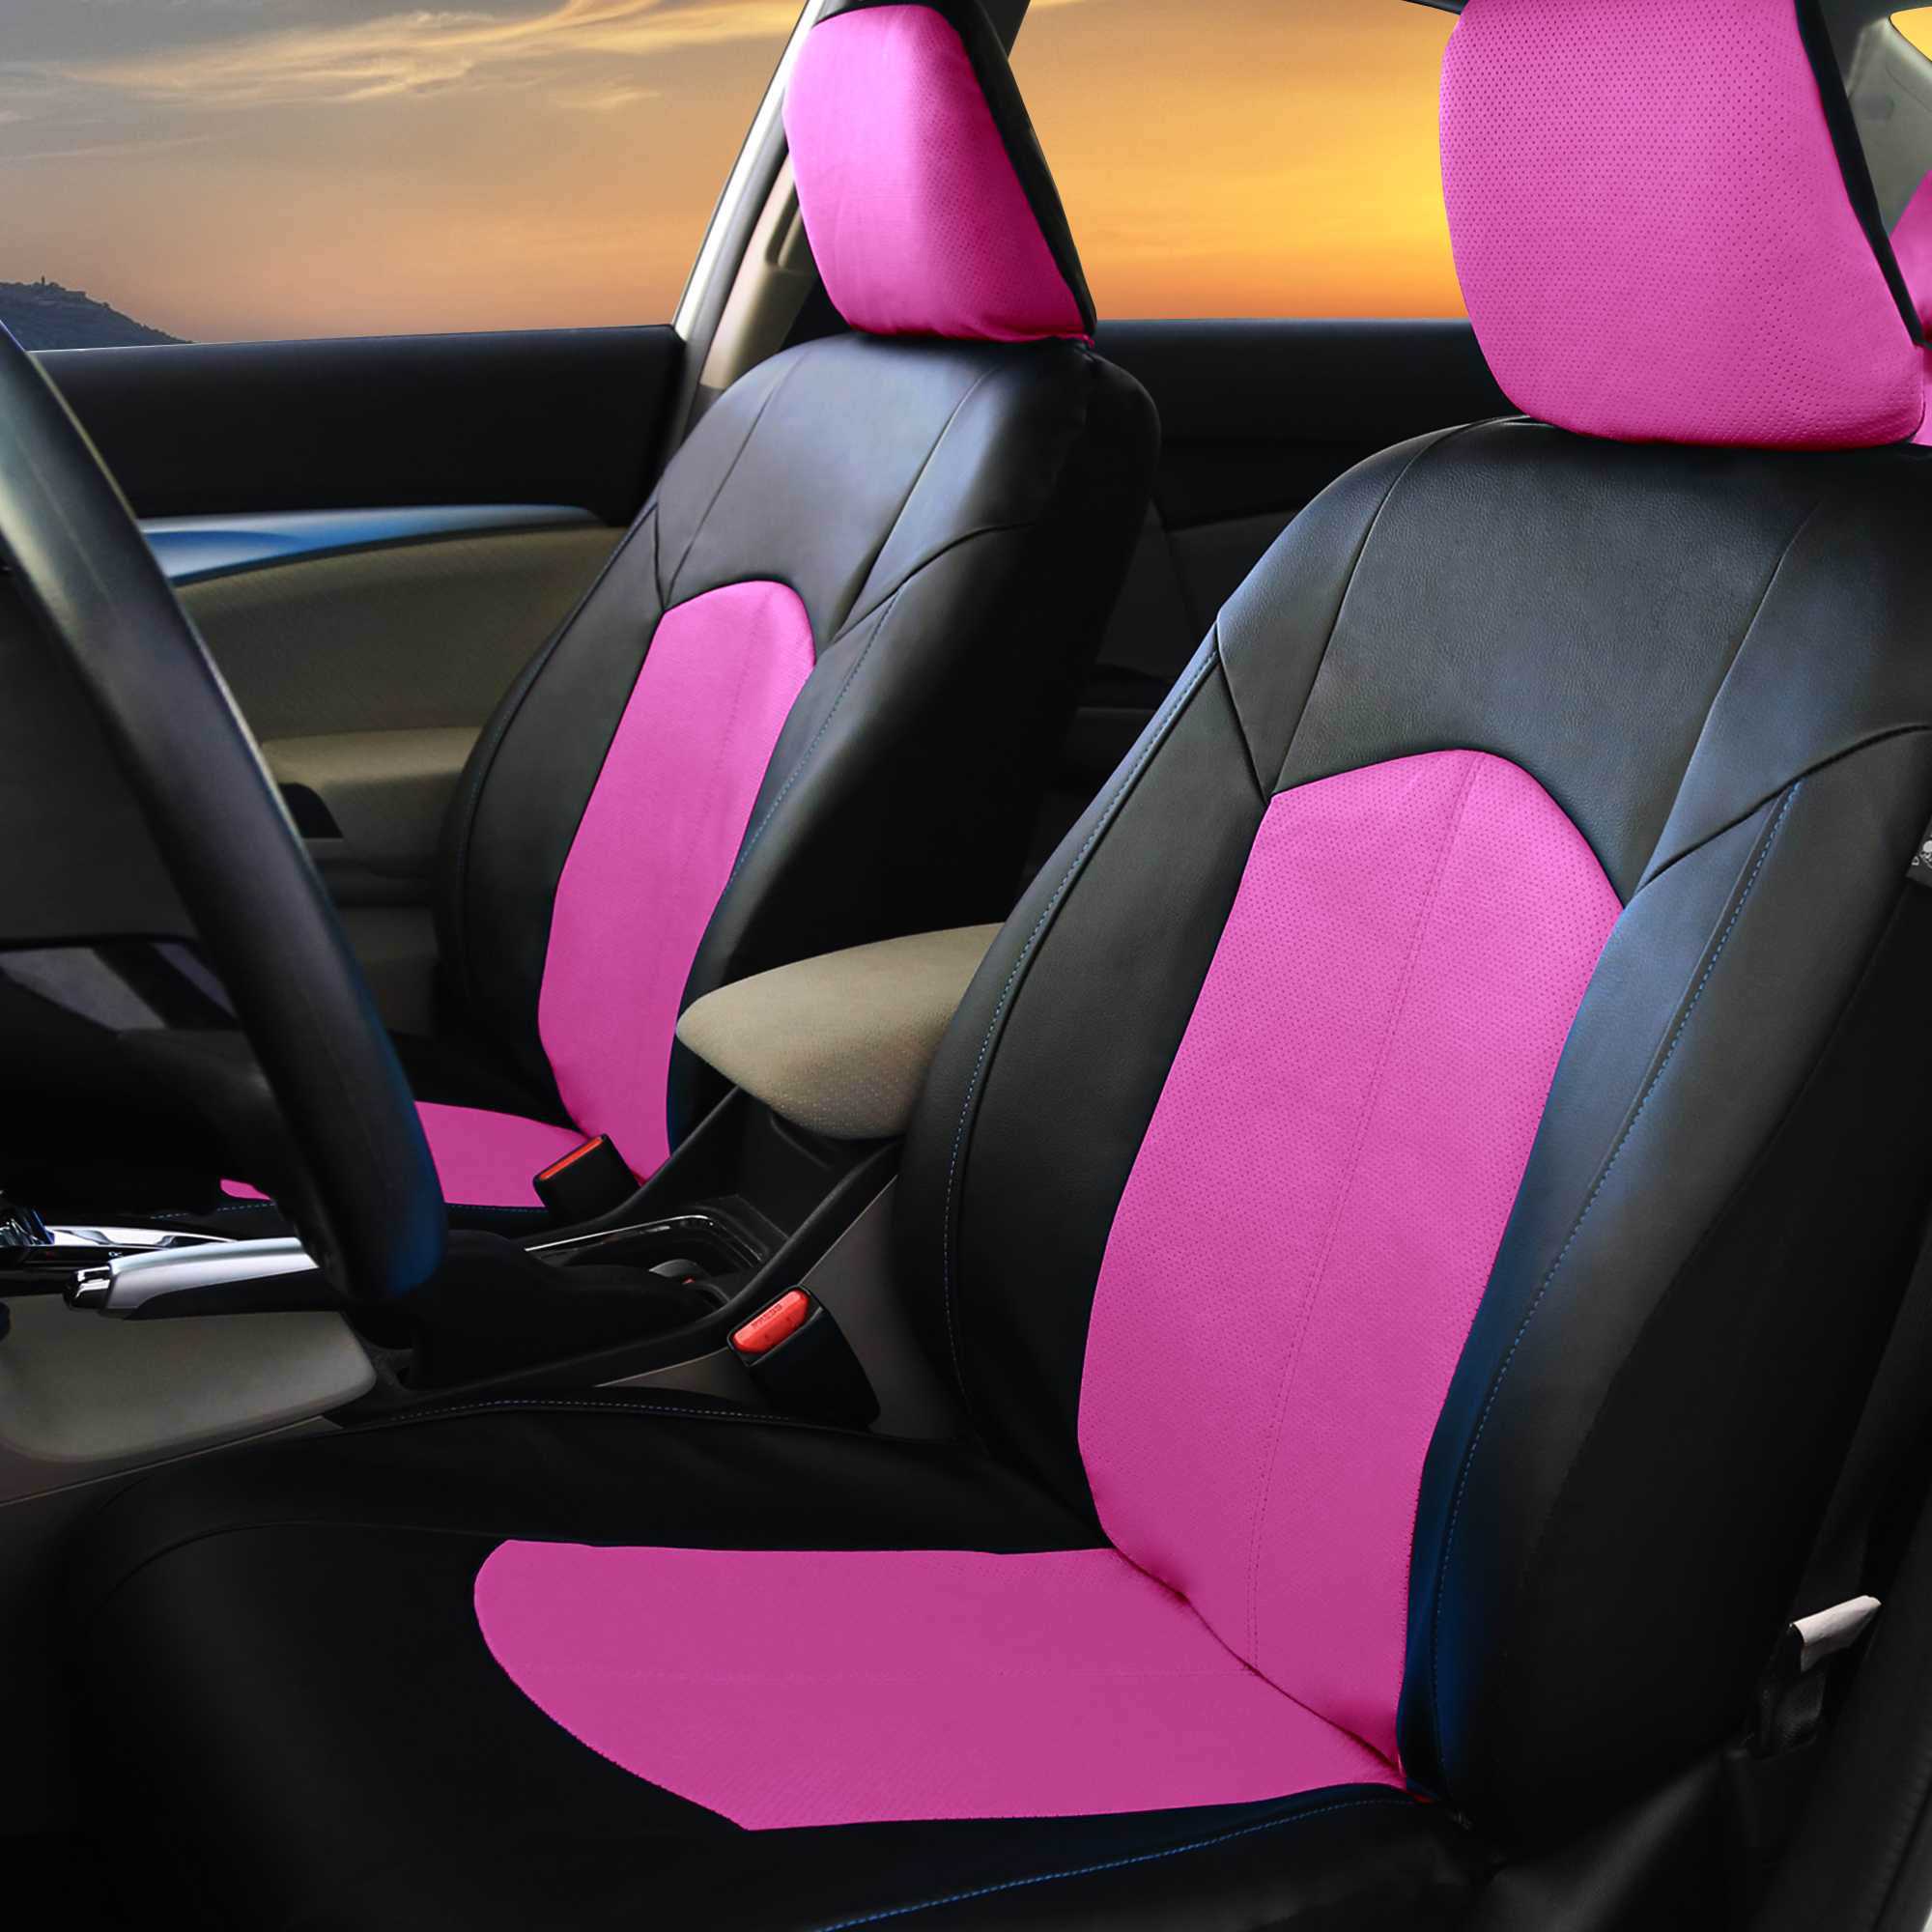 pu leather car seat covers for auto pink black 5 headrests black floor mat. Black Bedroom Furniture Sets. Home Design Ideas